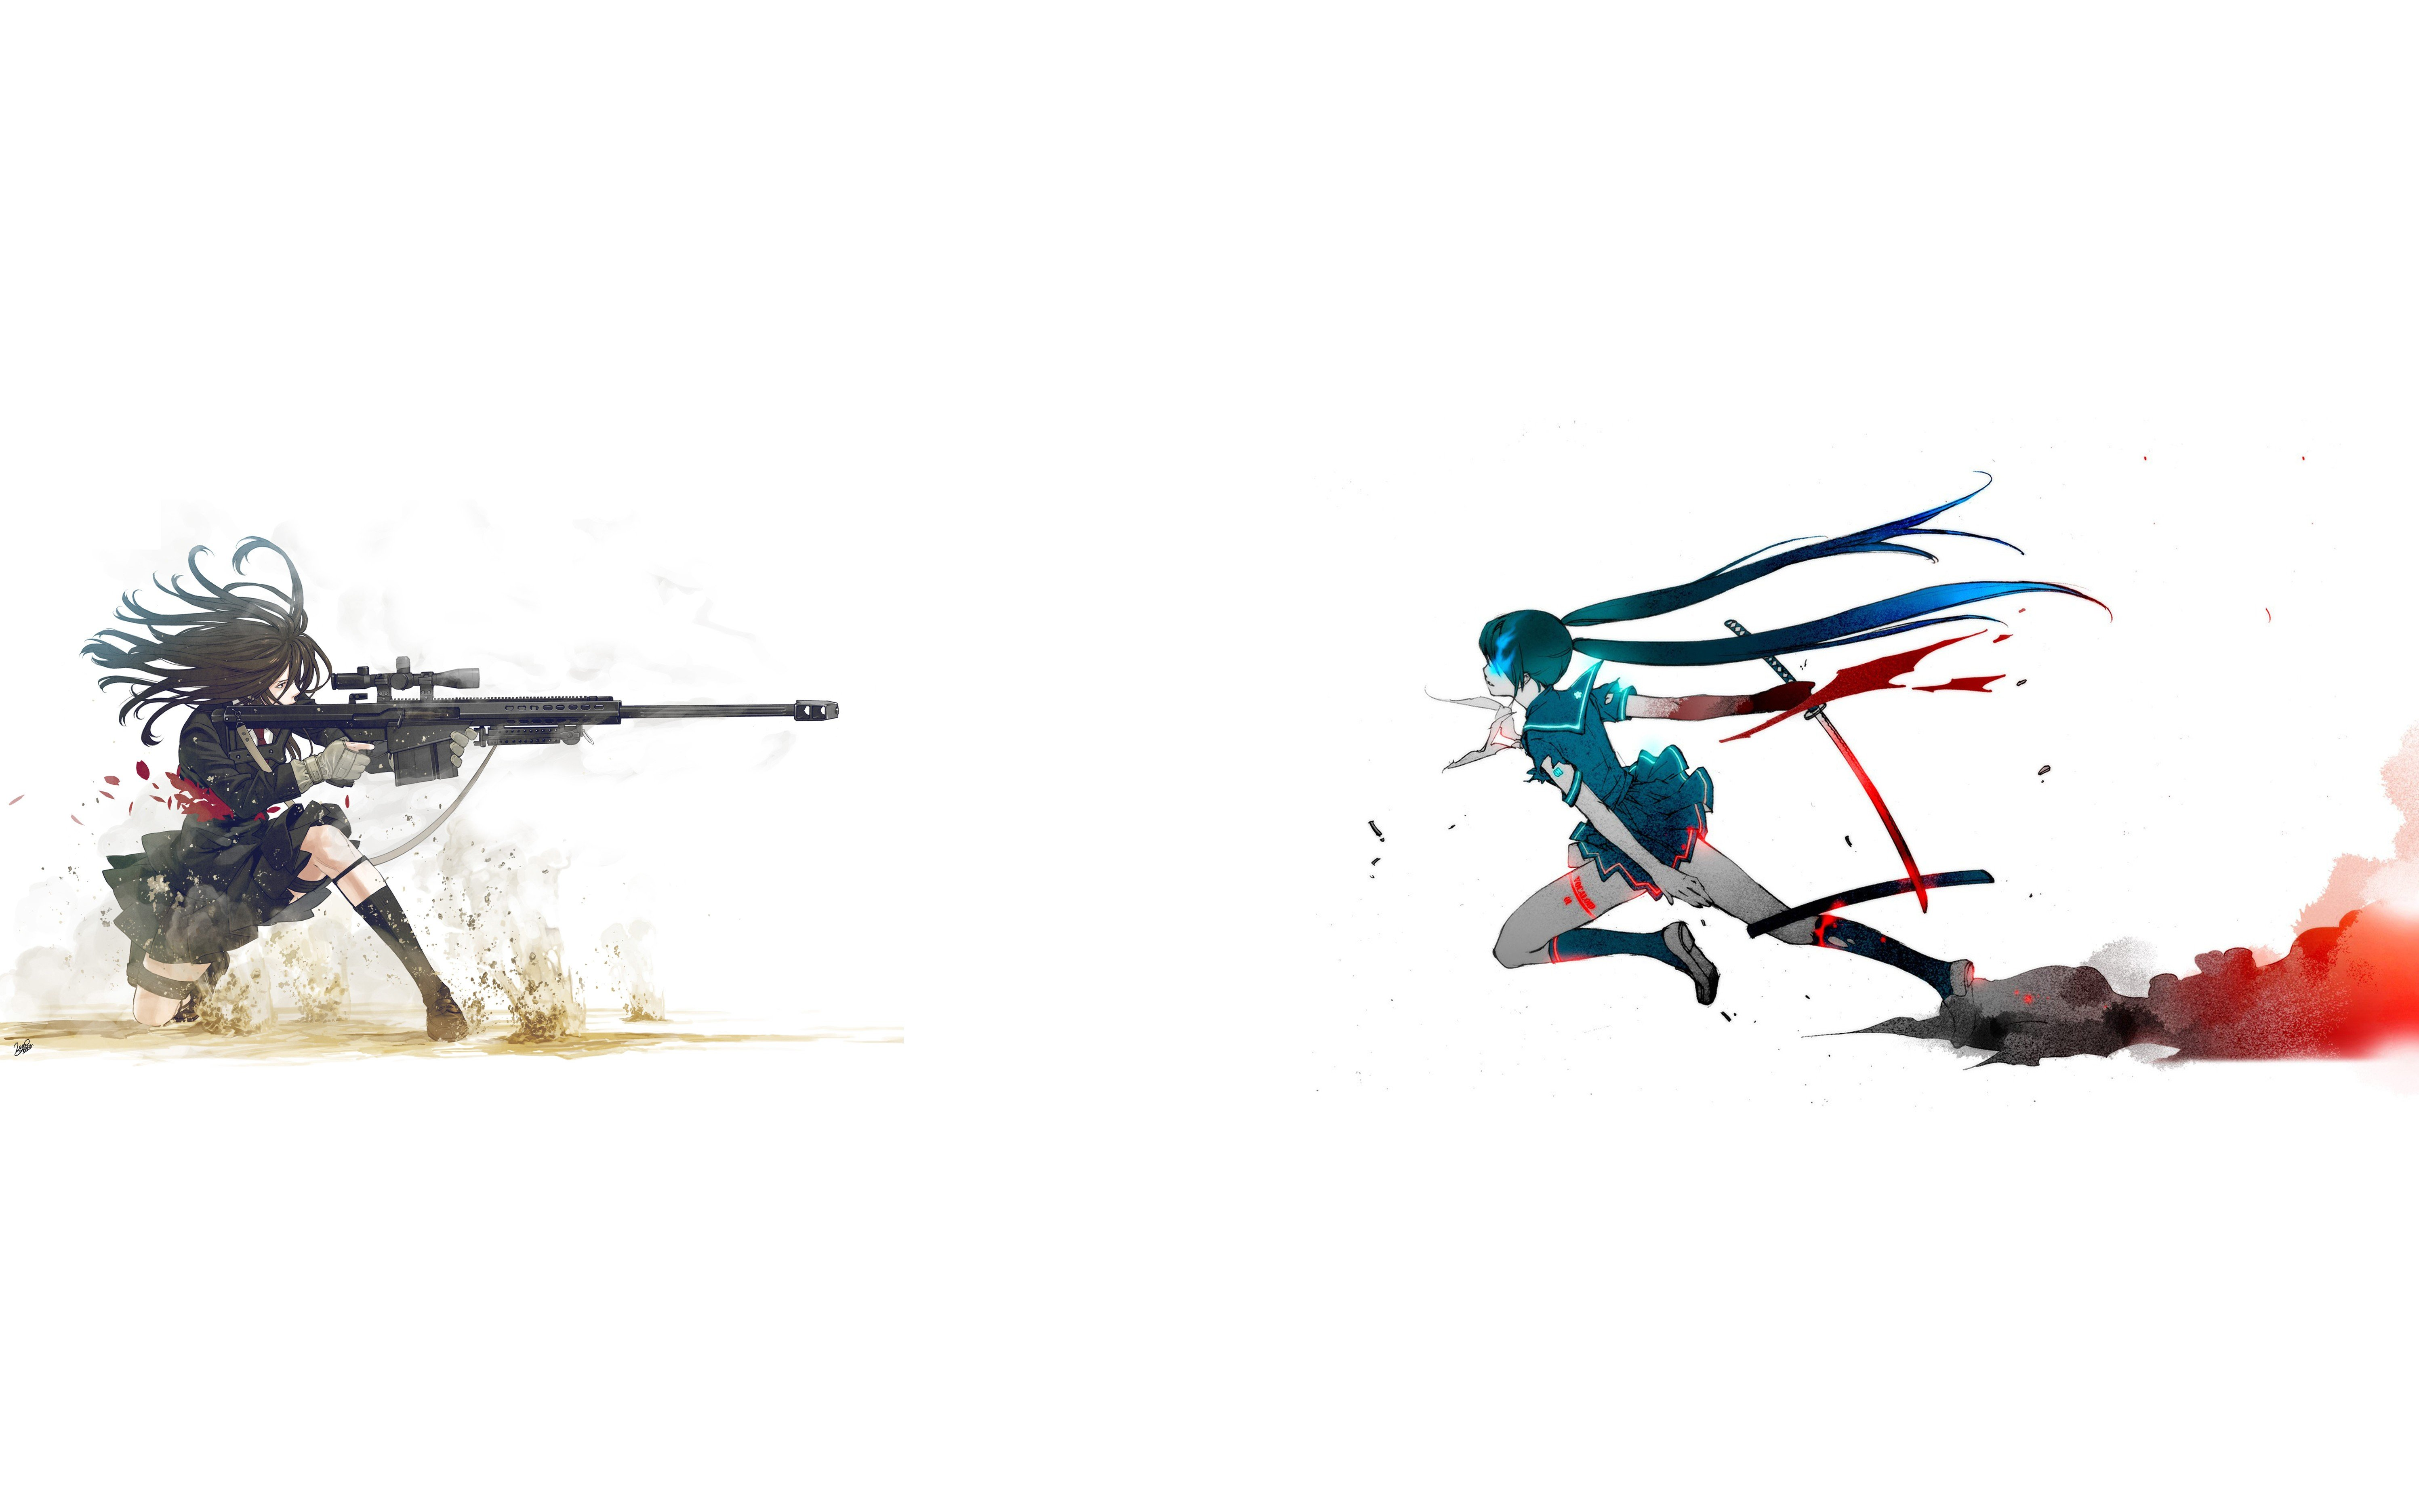 black Rock Shooter School Uniforms Samurai 50 Cal Simple 5988x3743